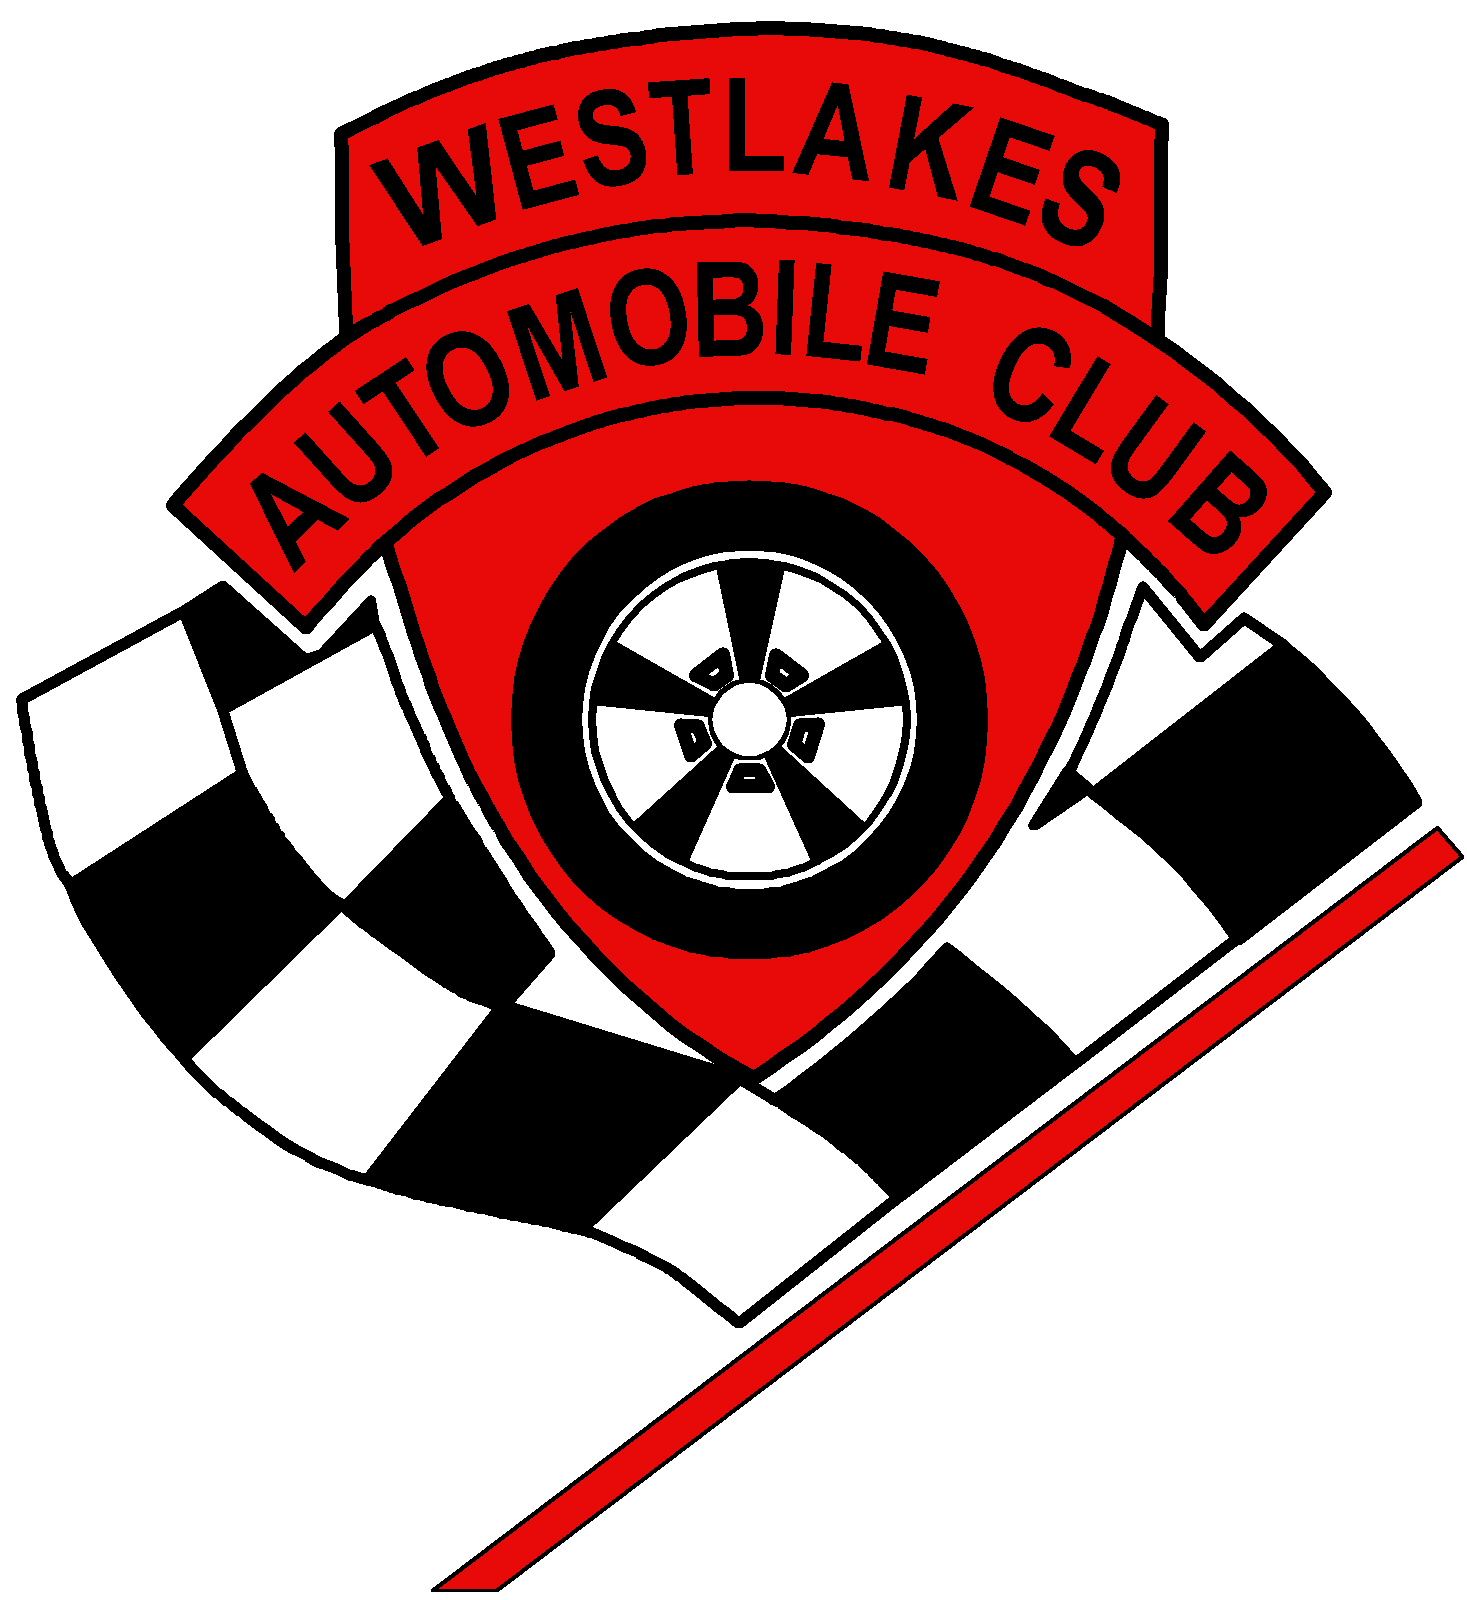 Westlakes Automobile Club « Snake Racing.